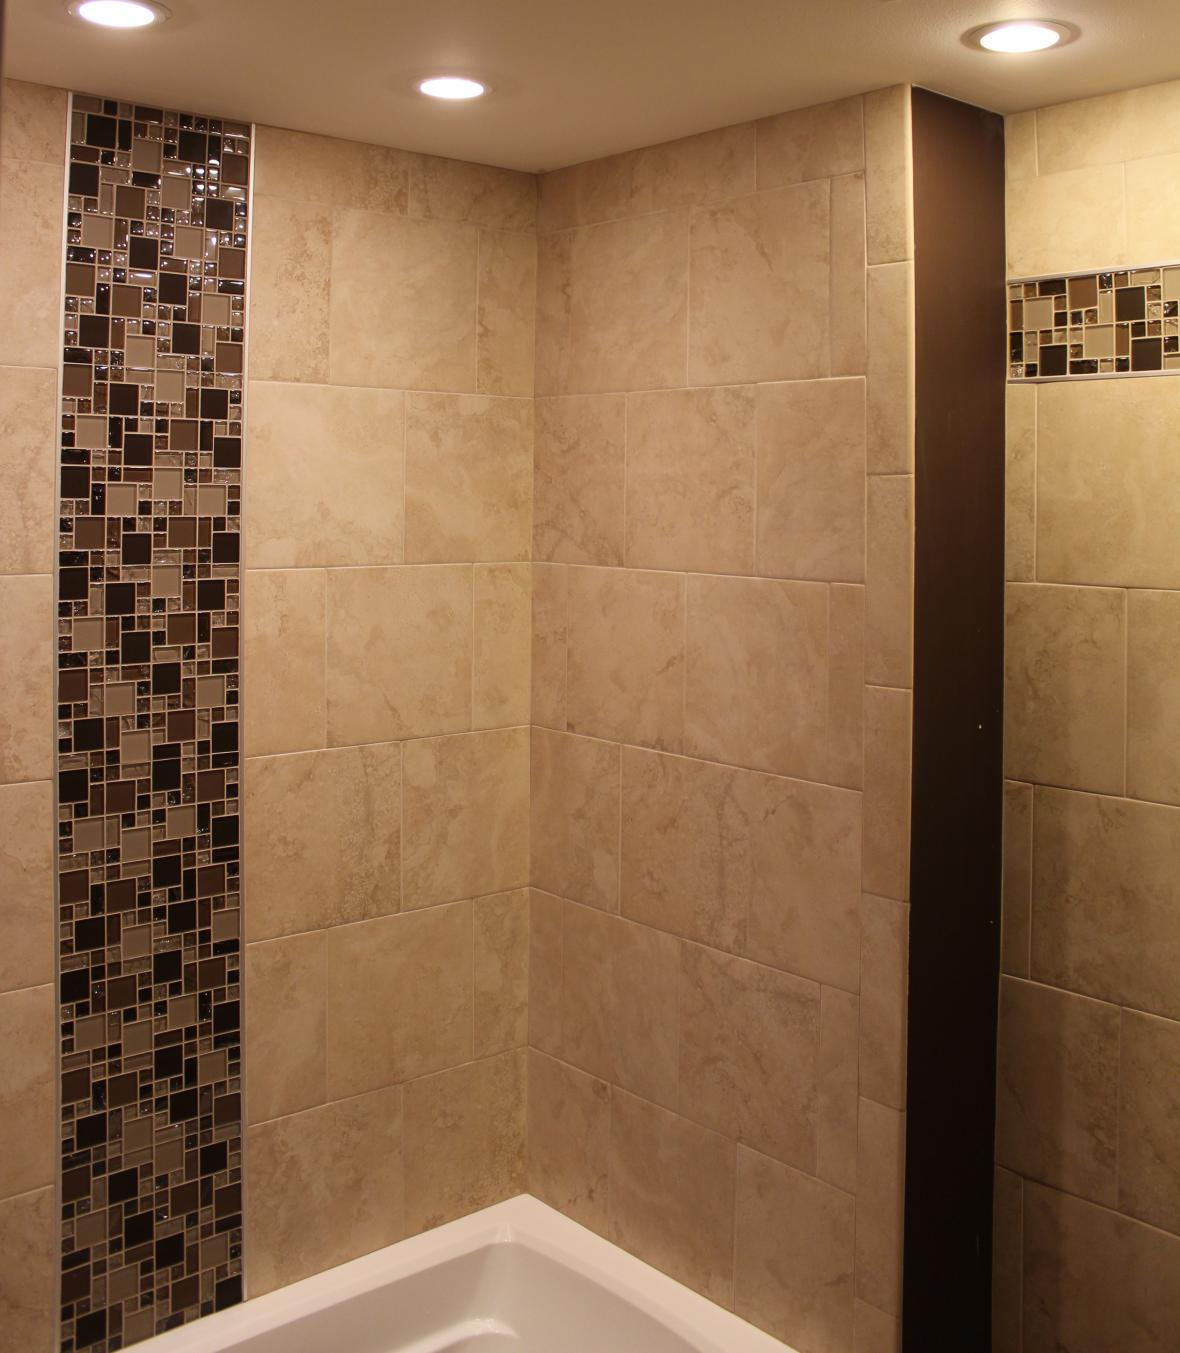 Porcelain Tile Shower With Mosaic Glass Borders New Jersey Custom Tile